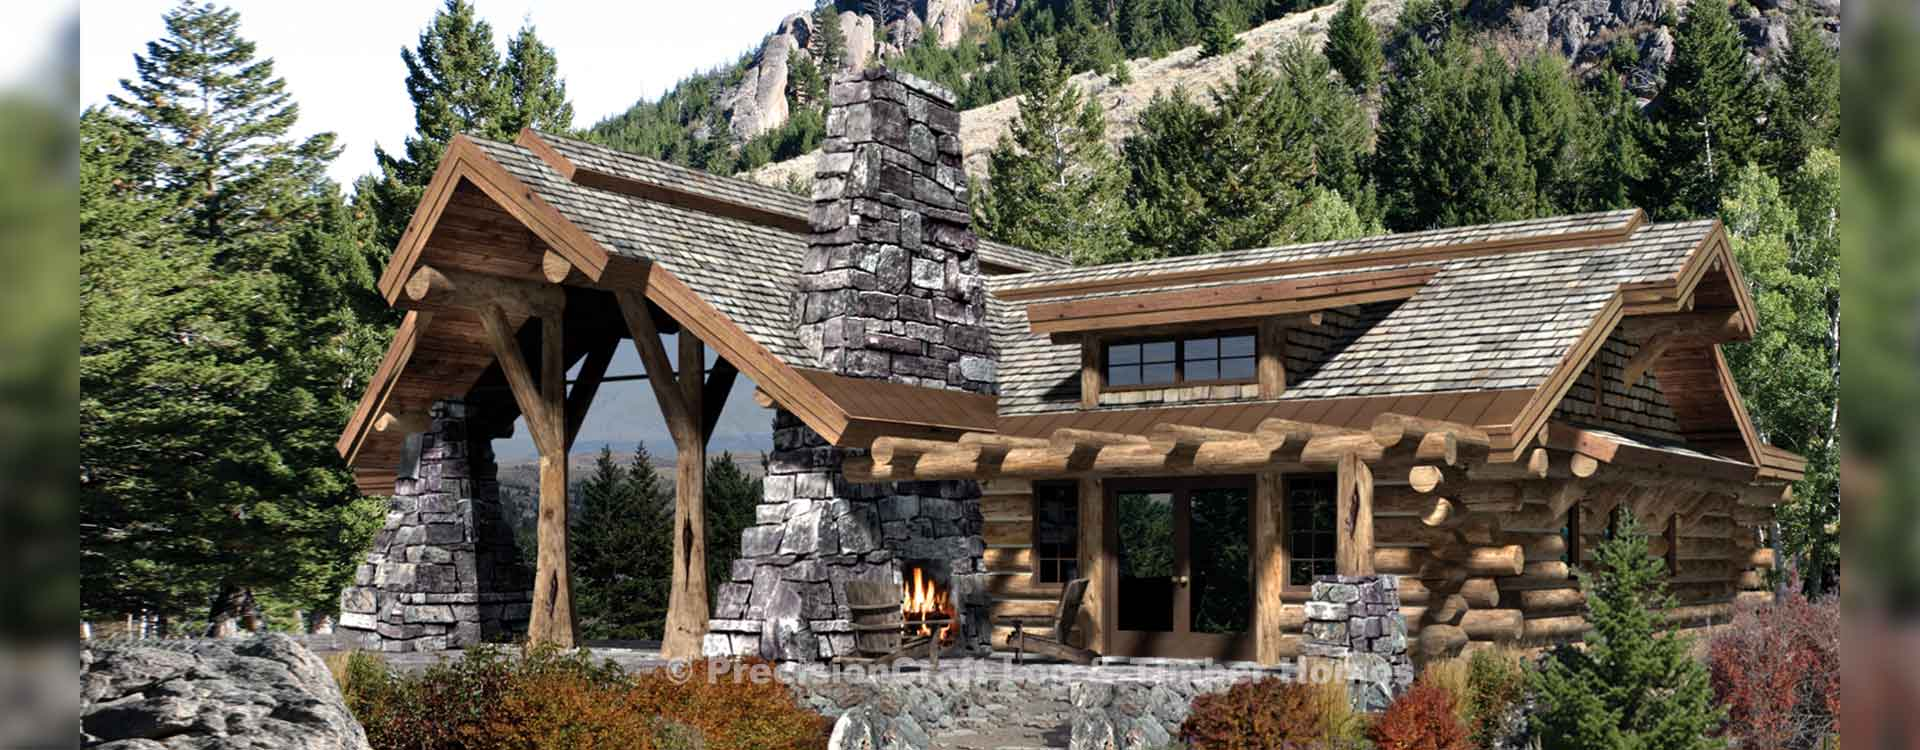 Caribou handcrafted log home Rendering